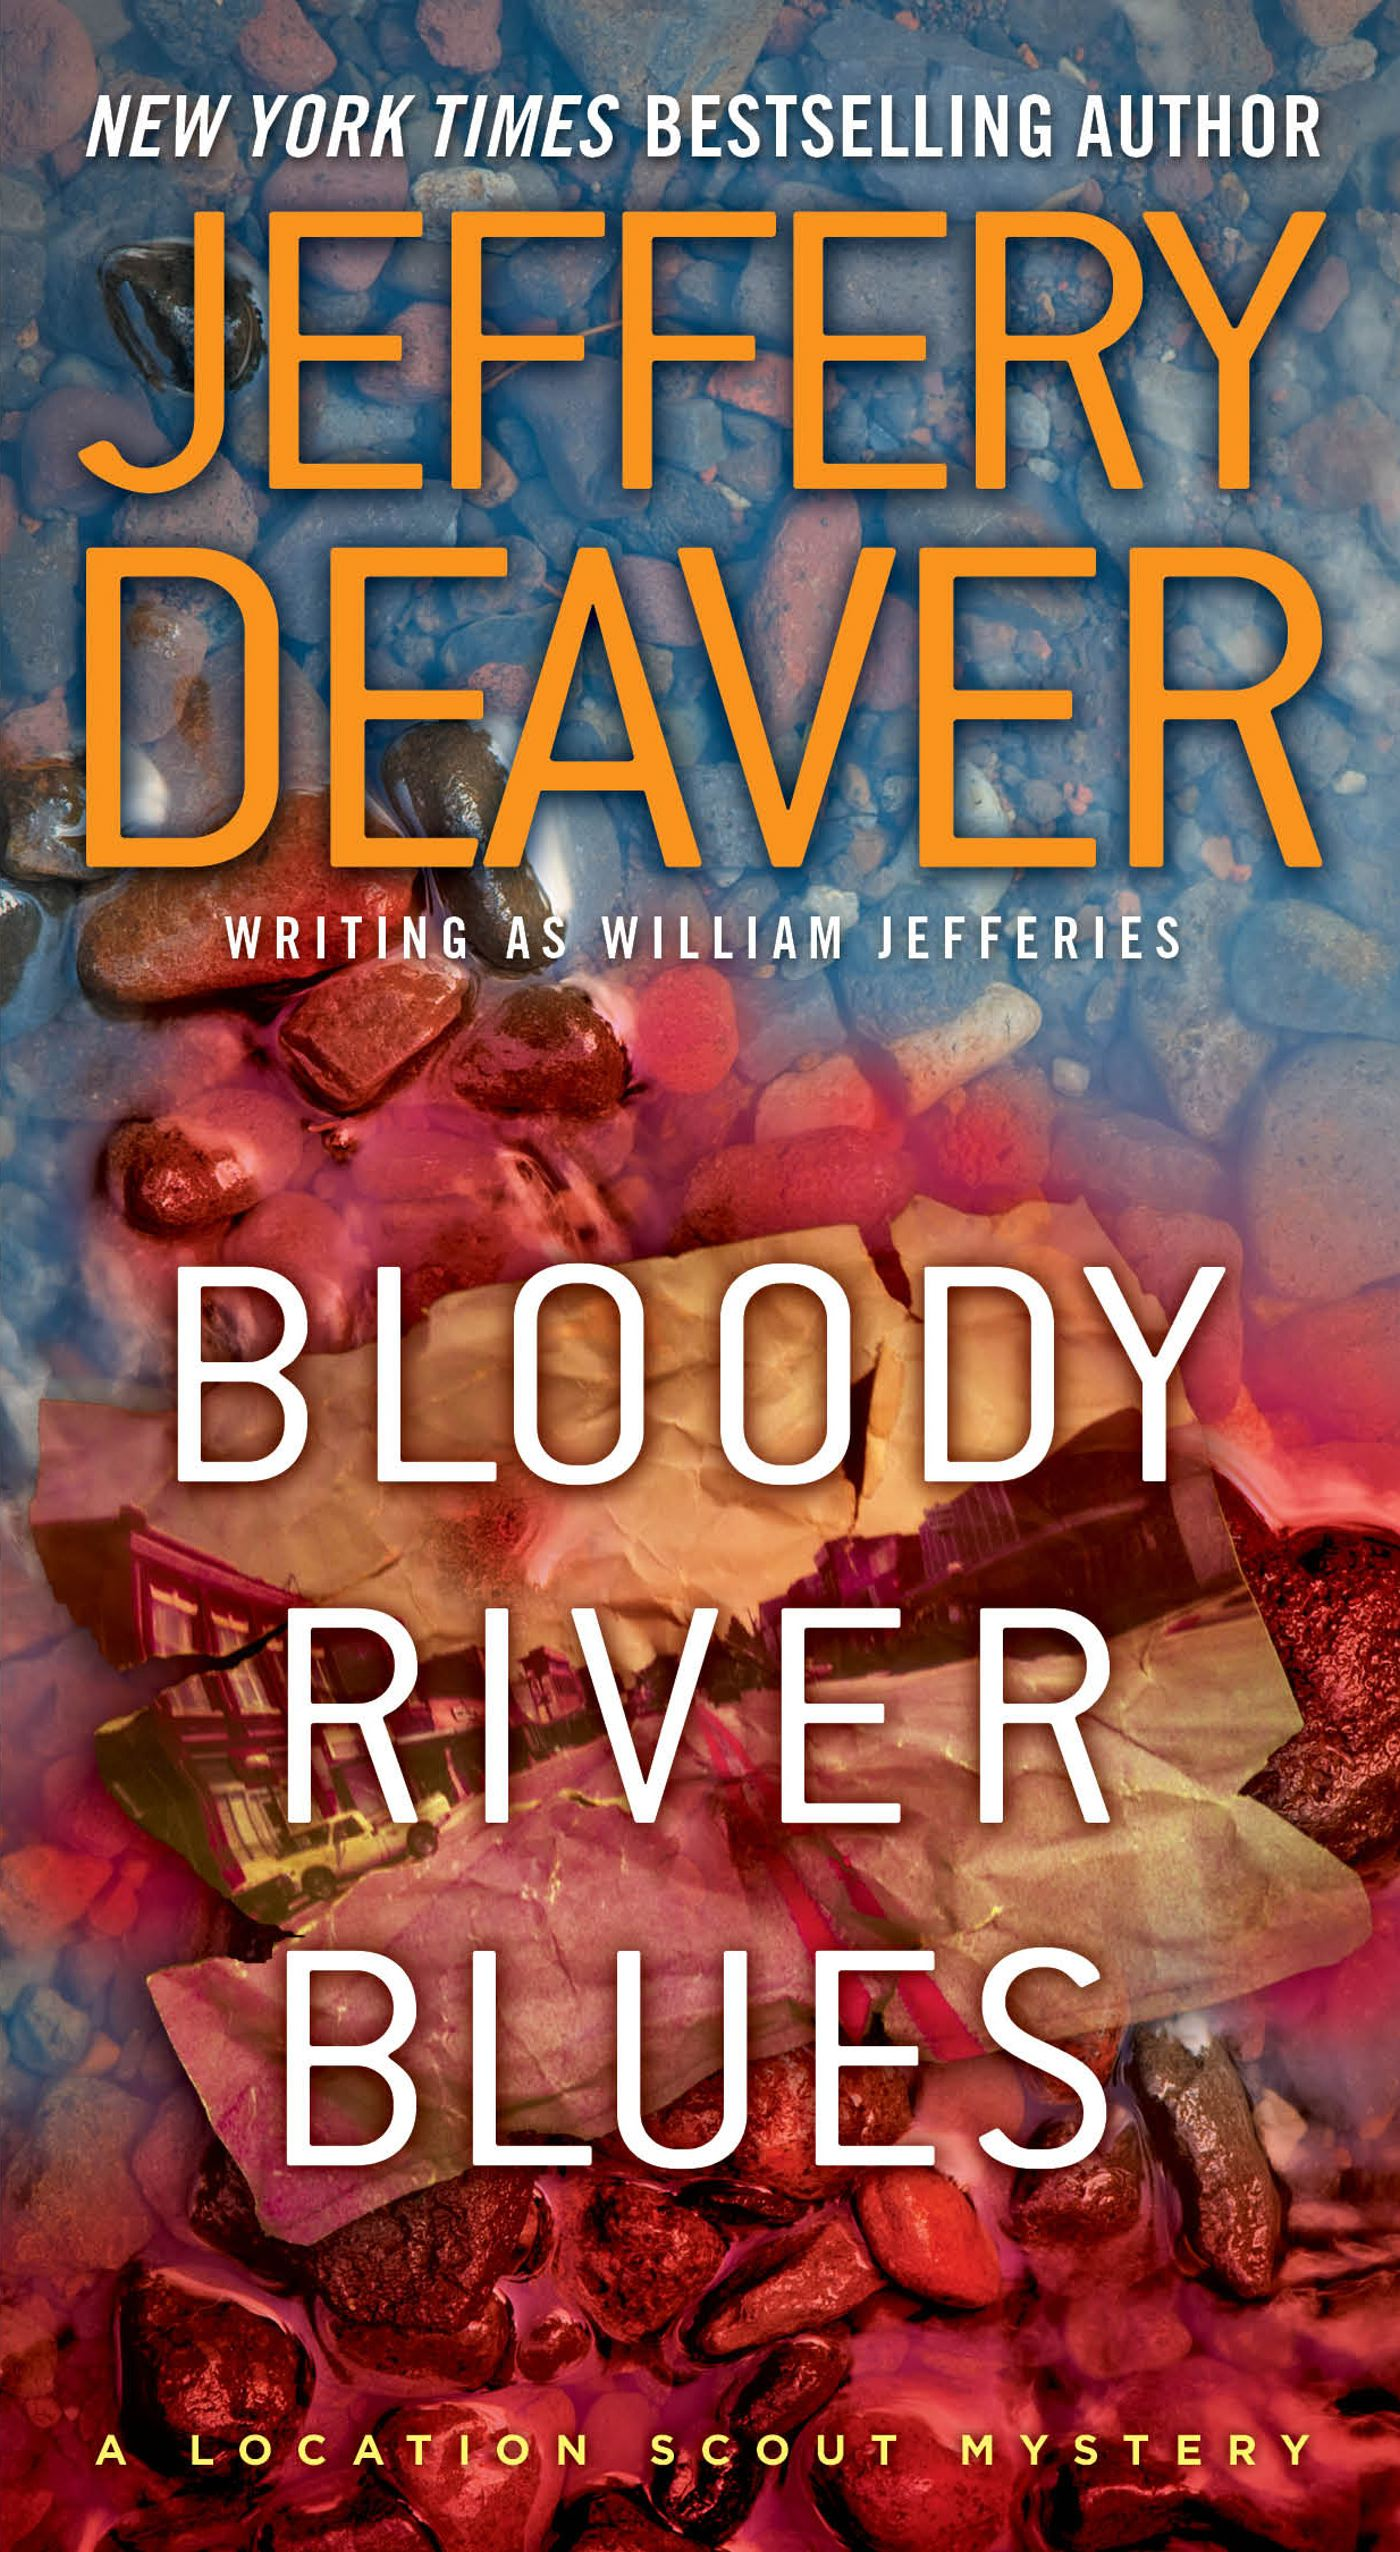 Bloody river blues 9781451621693 hr